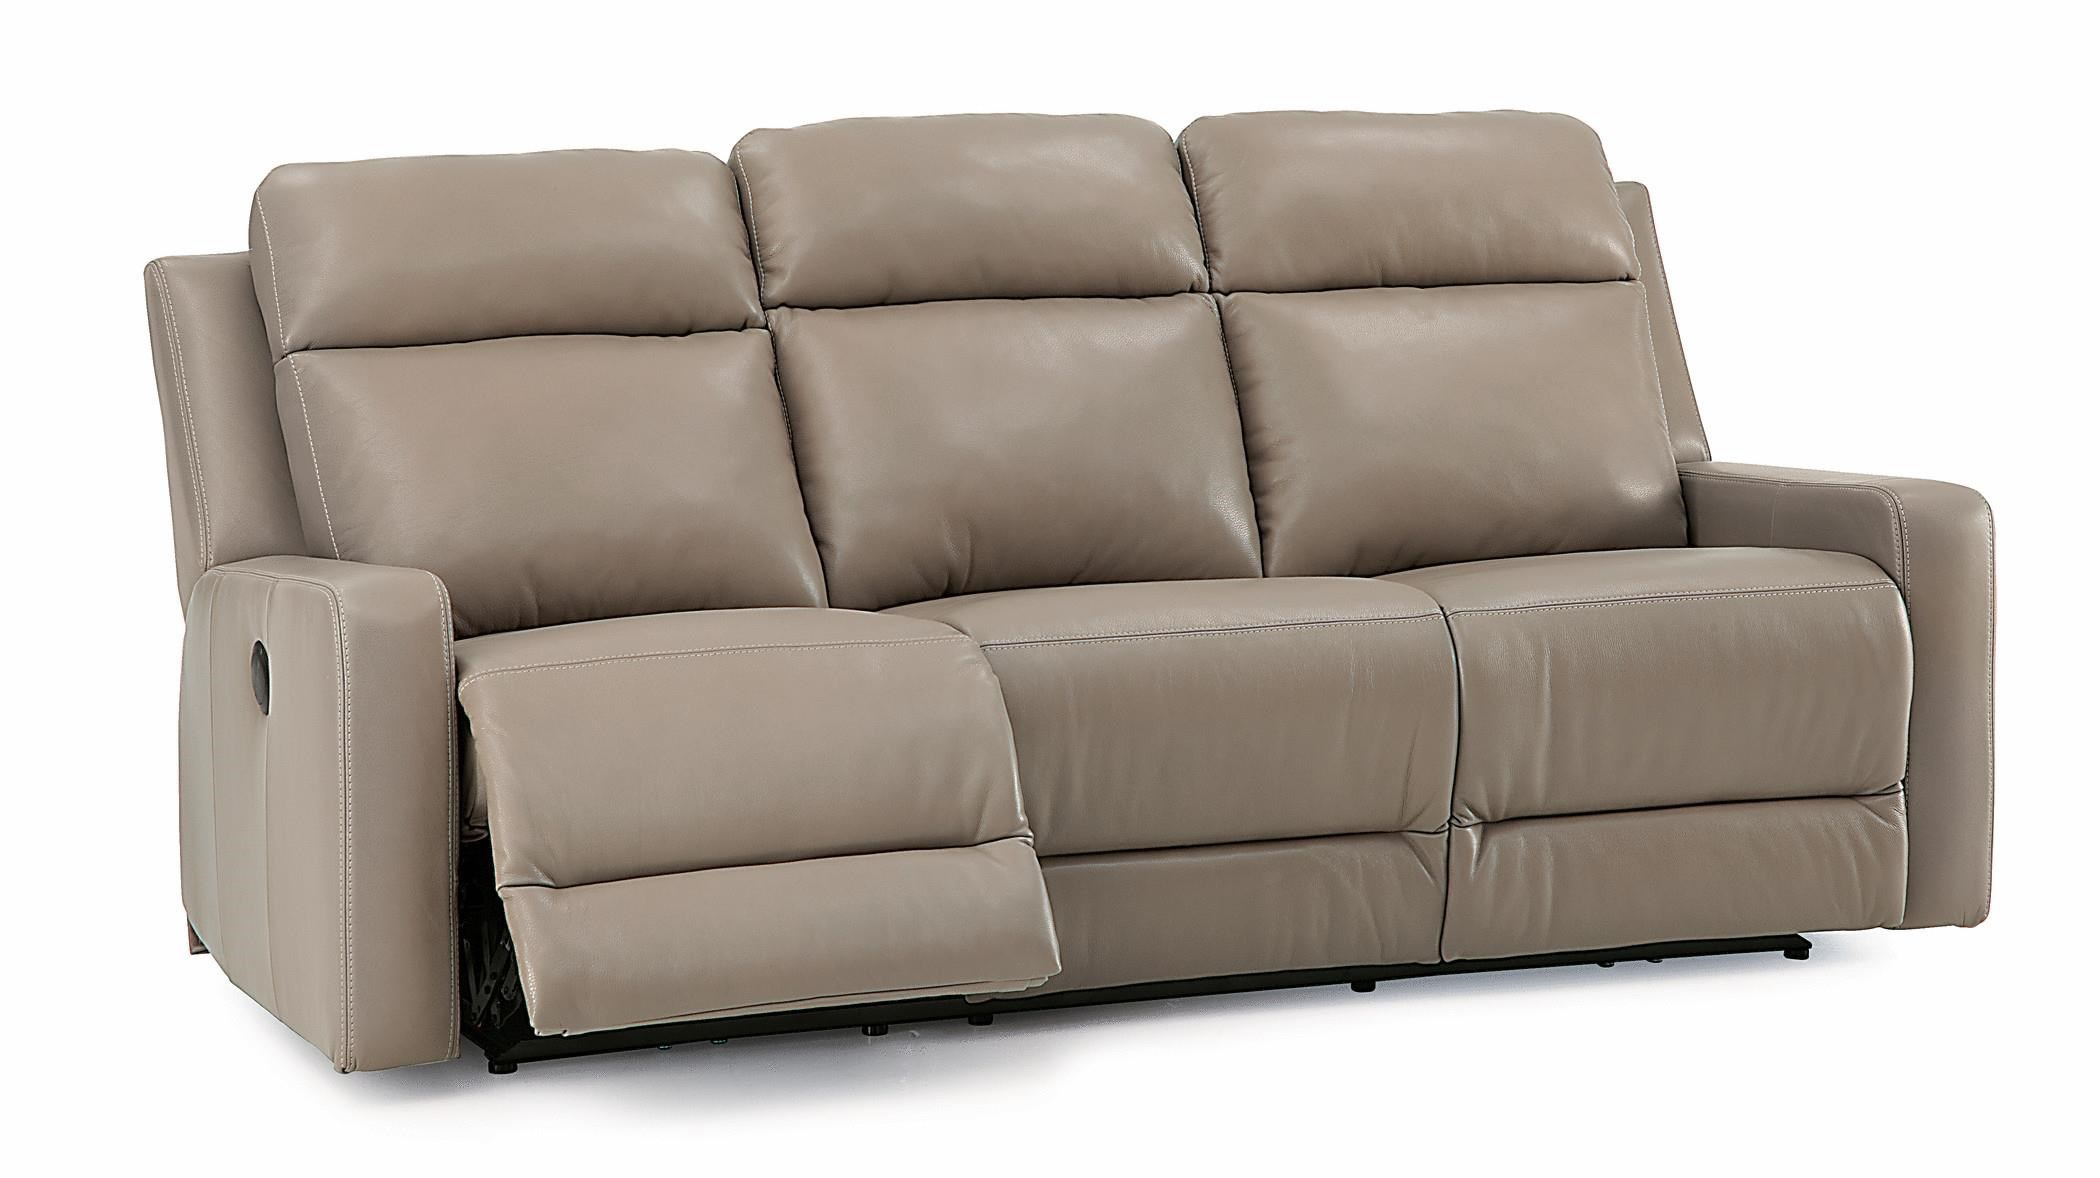 Palliser Sofas Palliser Sofas And Sectionals Thesofa